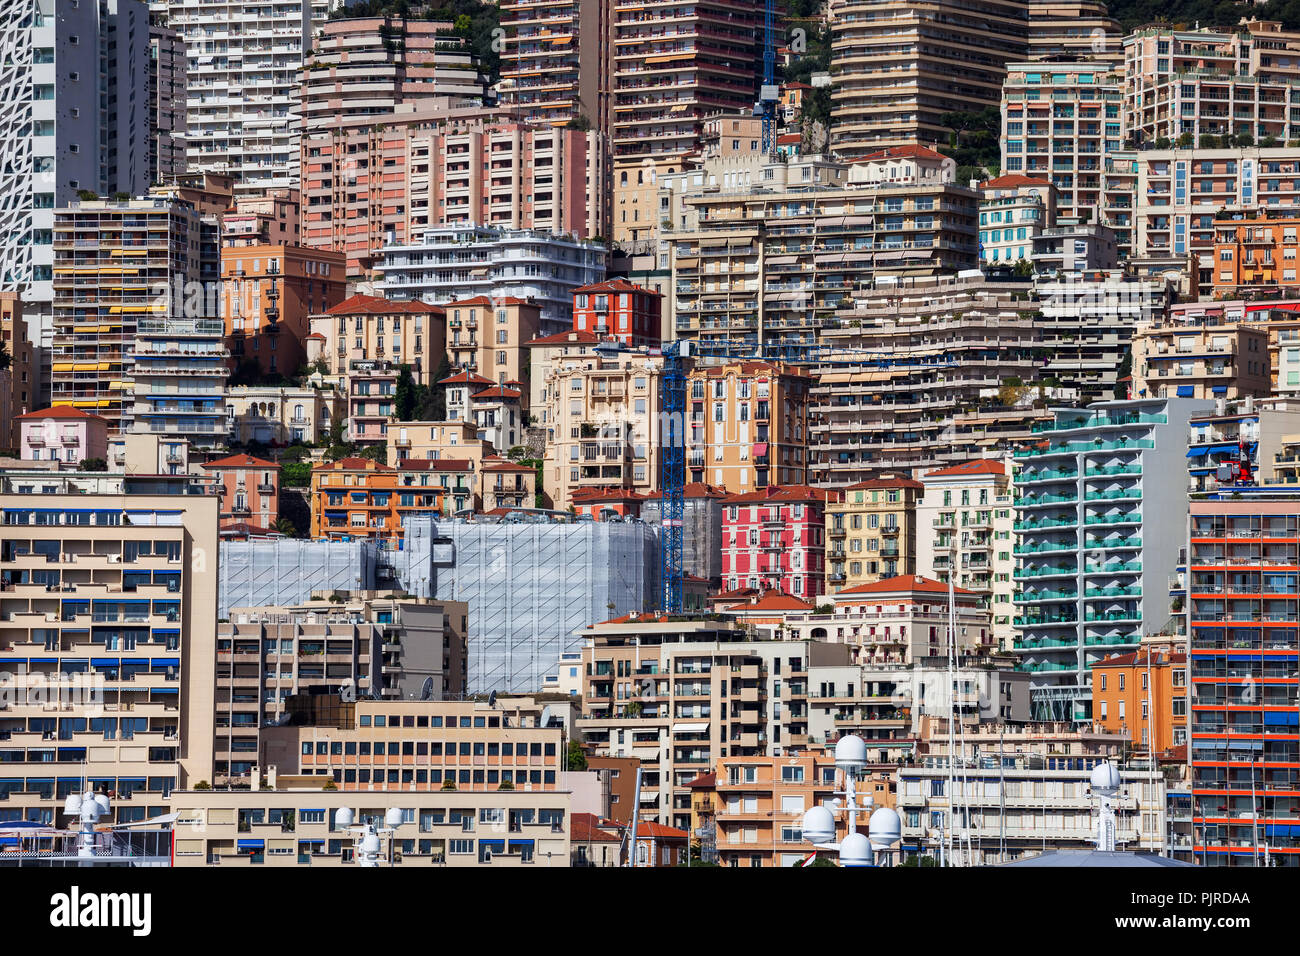 Principality of Monaco cityscape, densely populated urban background on mountain slope with houses, apartment buildings, towers, block of flats Stock Photo